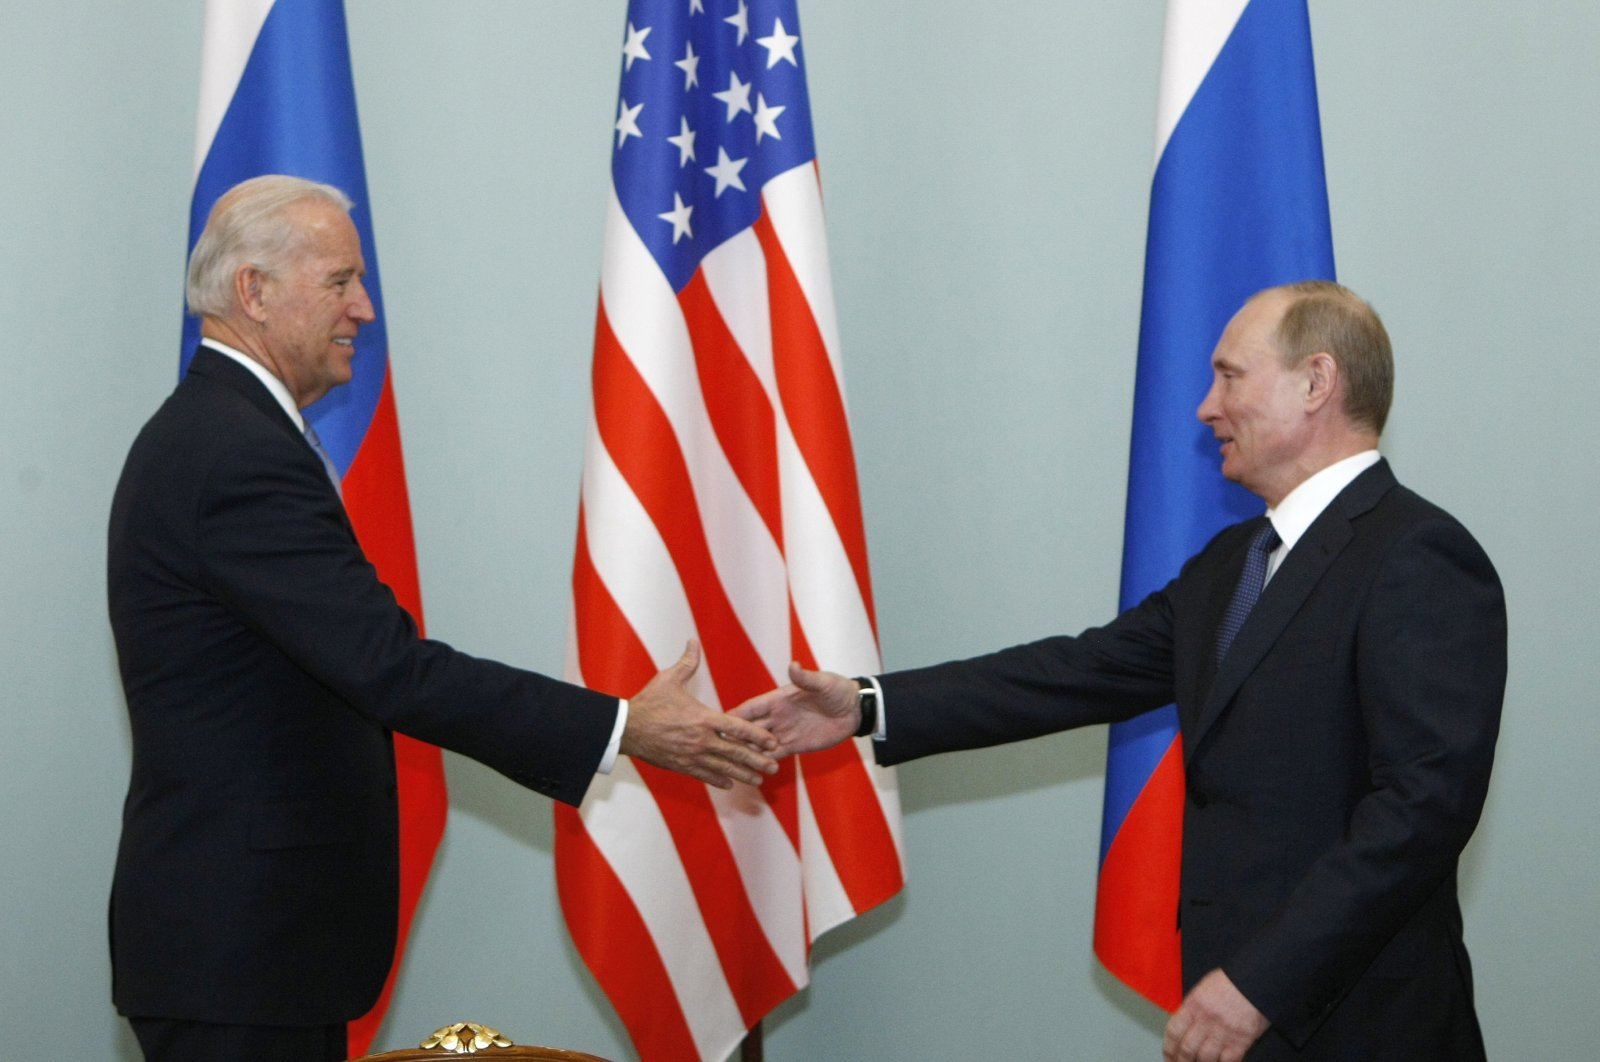 Vice President of the United States Joe Biden (L) shakes hands with Russian Prime Minister Vladimir Putin in Moscow, Russia, March 10, 2011. (AP Photo)